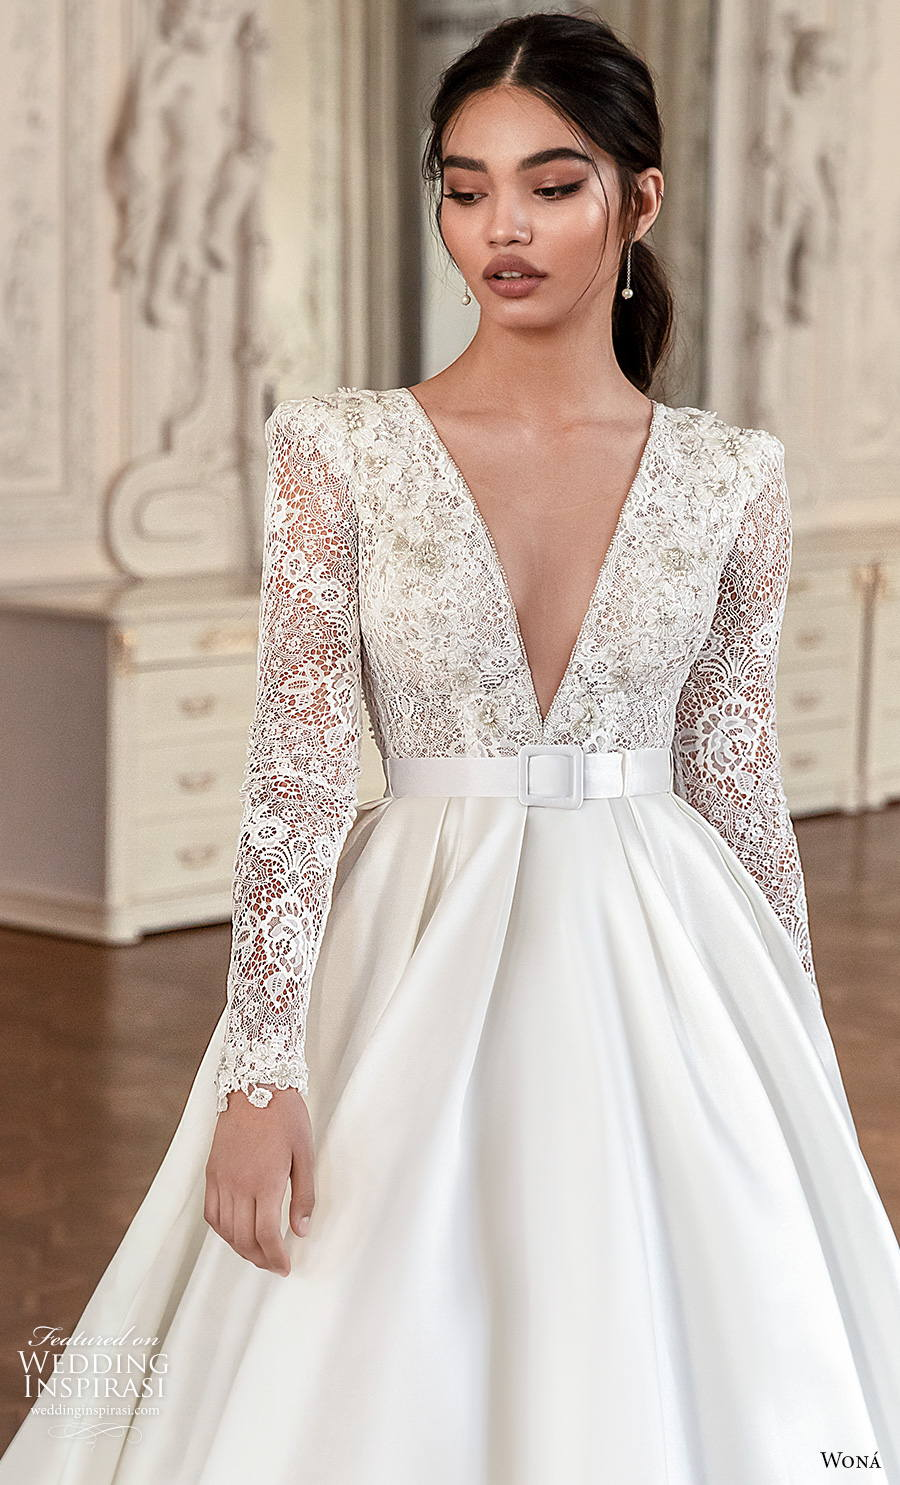 wona concept 2021 romance bridal long sleeves deep v neck heavily embellished bodice princess elegant a  line wedding dress keyhole bacl royal train (4) zv